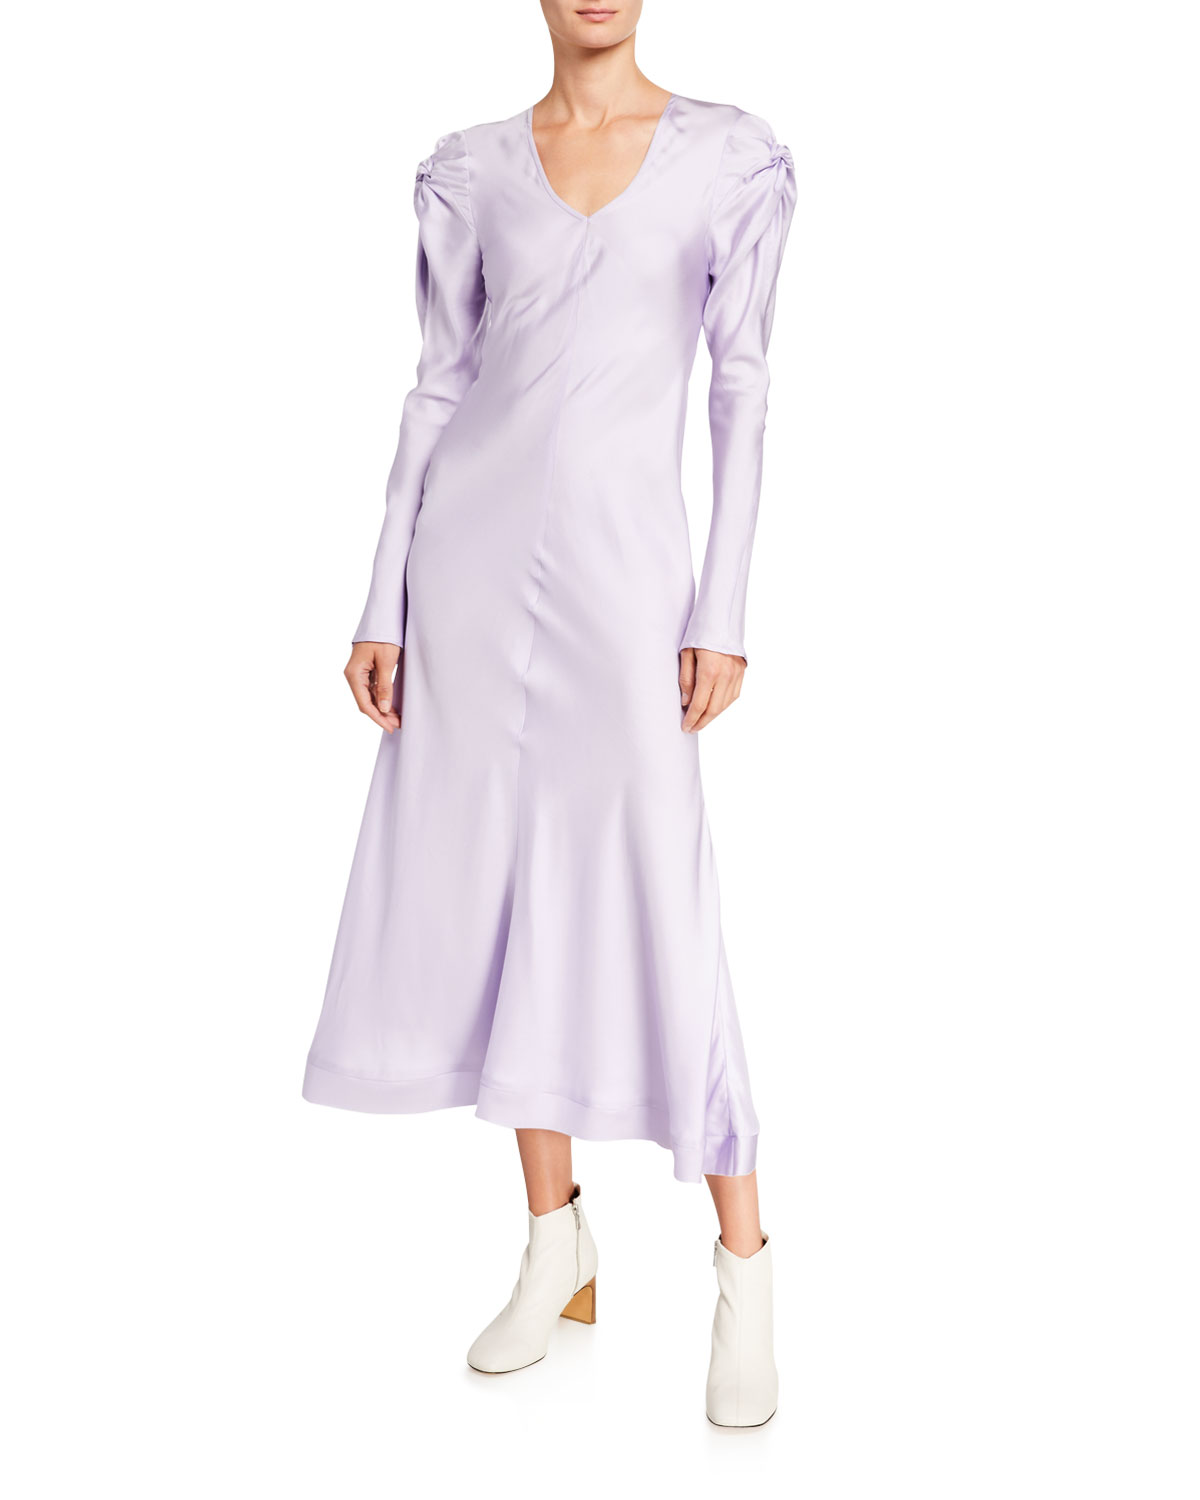 Maggie Marilyn Dresses KNOT TODAY LONG-SLEEVE SILK DRESS